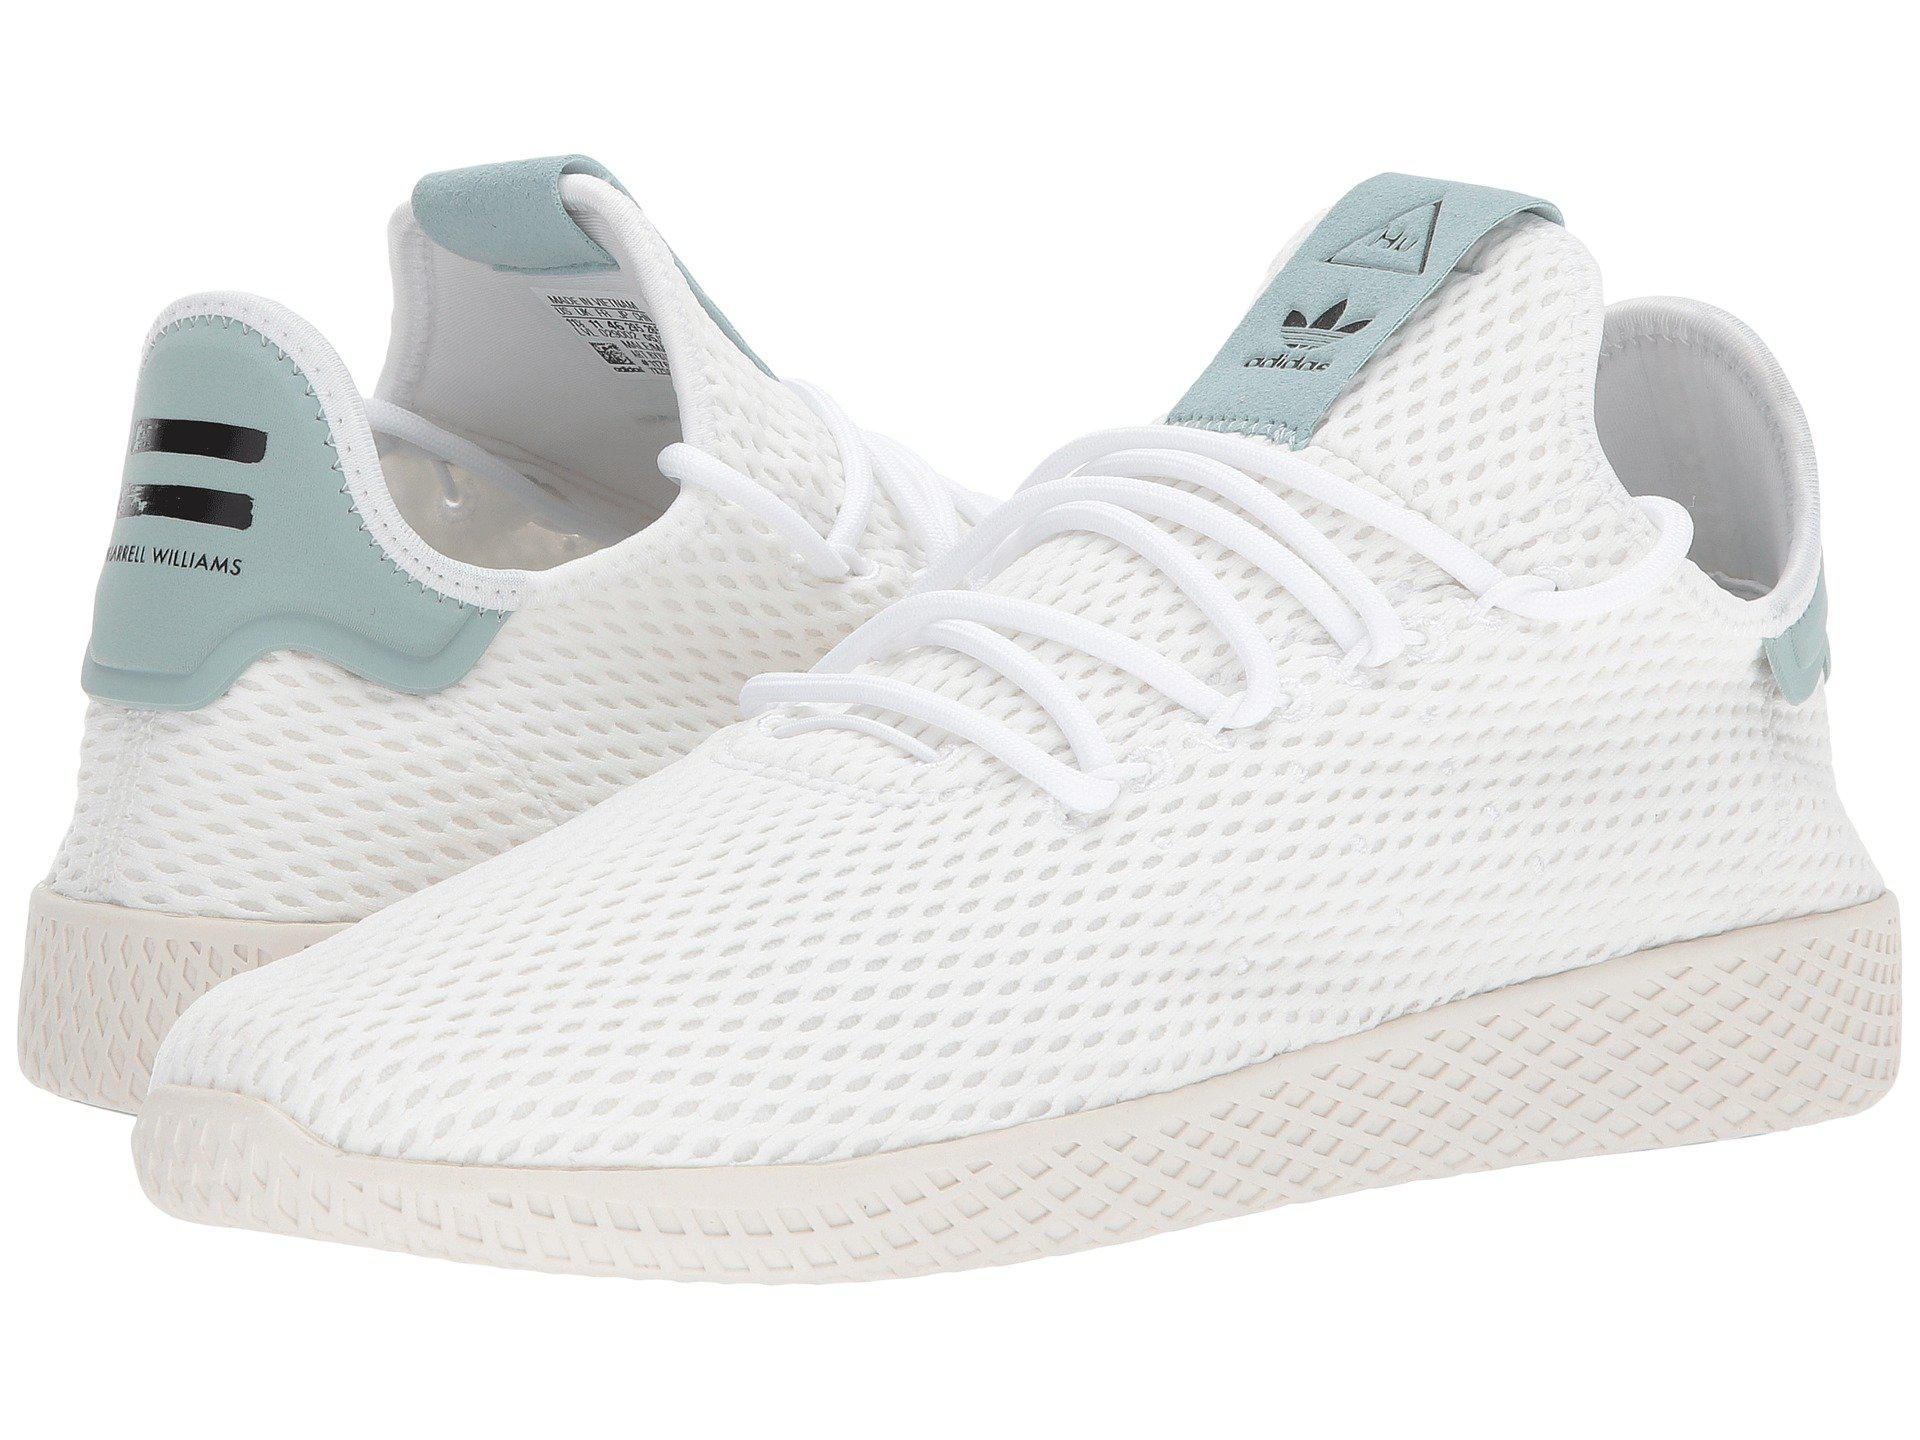 6dc3f40d2bad Lyst - adidas Originals Pharrell Williams Human Race (white white ...